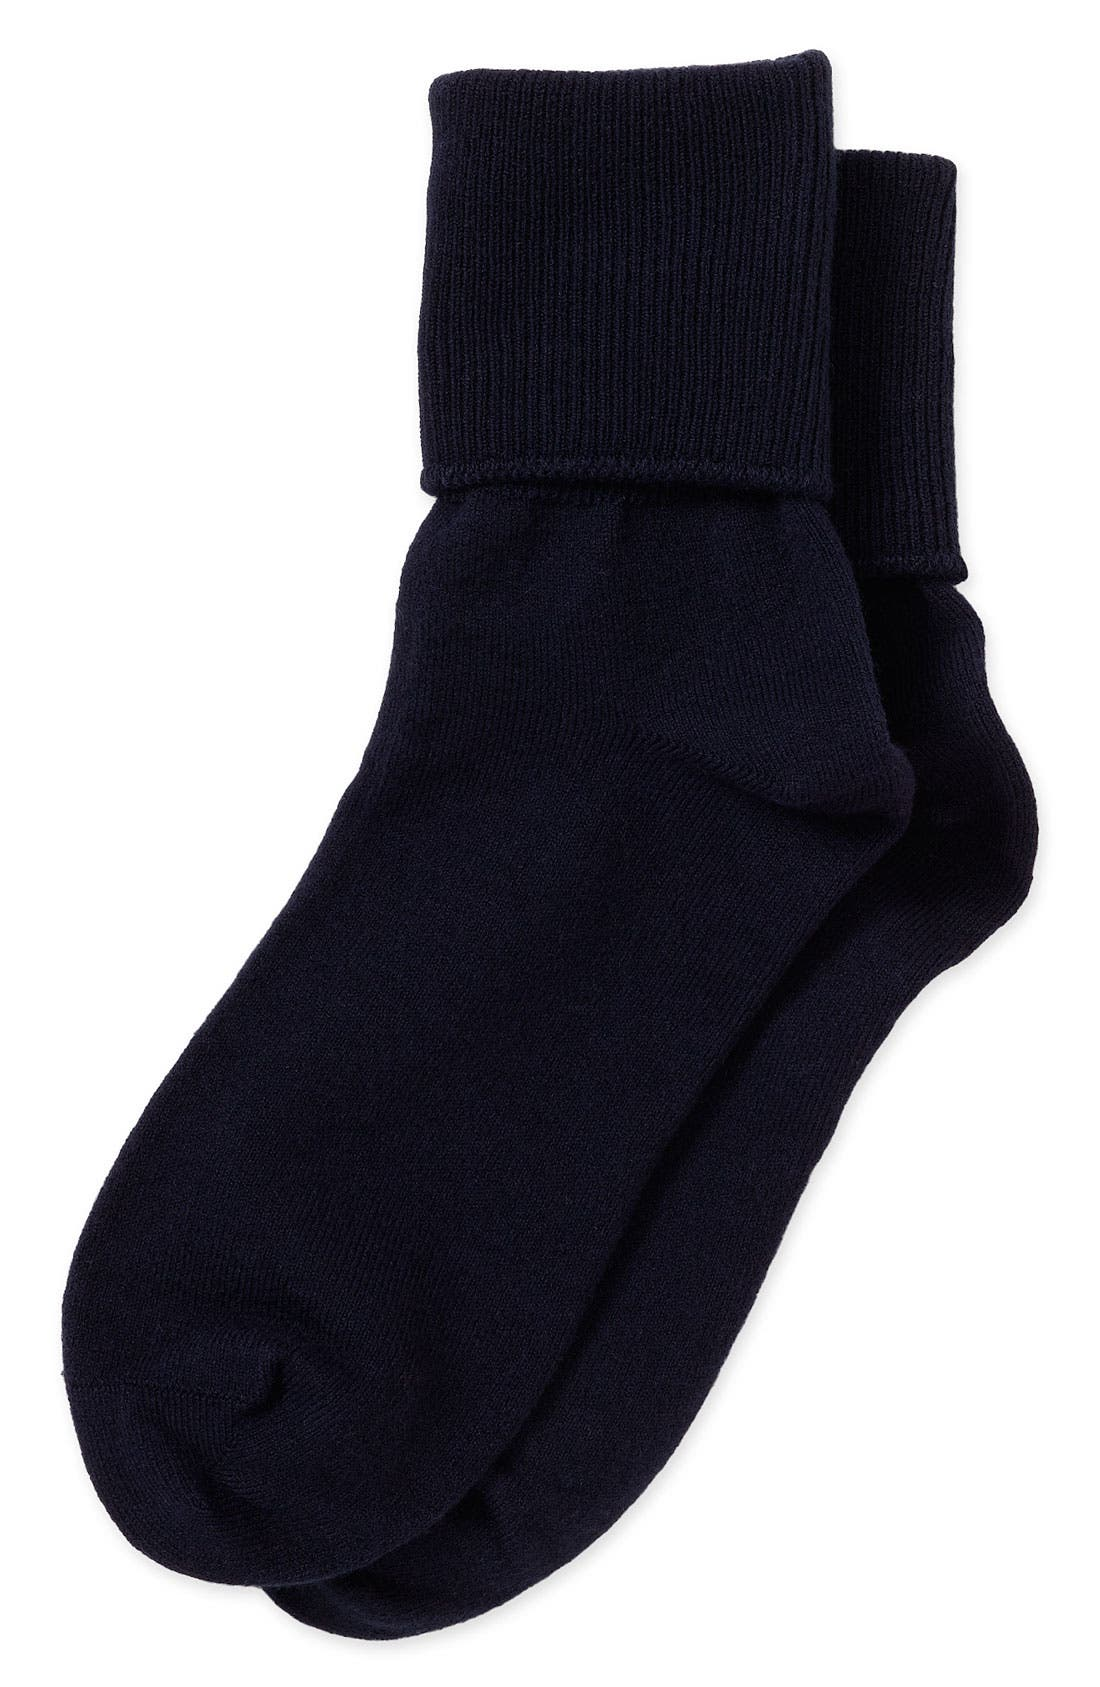 Alternate Image 1 Selected - Nordstrom Cotton Blend Socks with Turn Cuffs (Baby Girls, Toddler Girls, Little Girls & Big Girls)